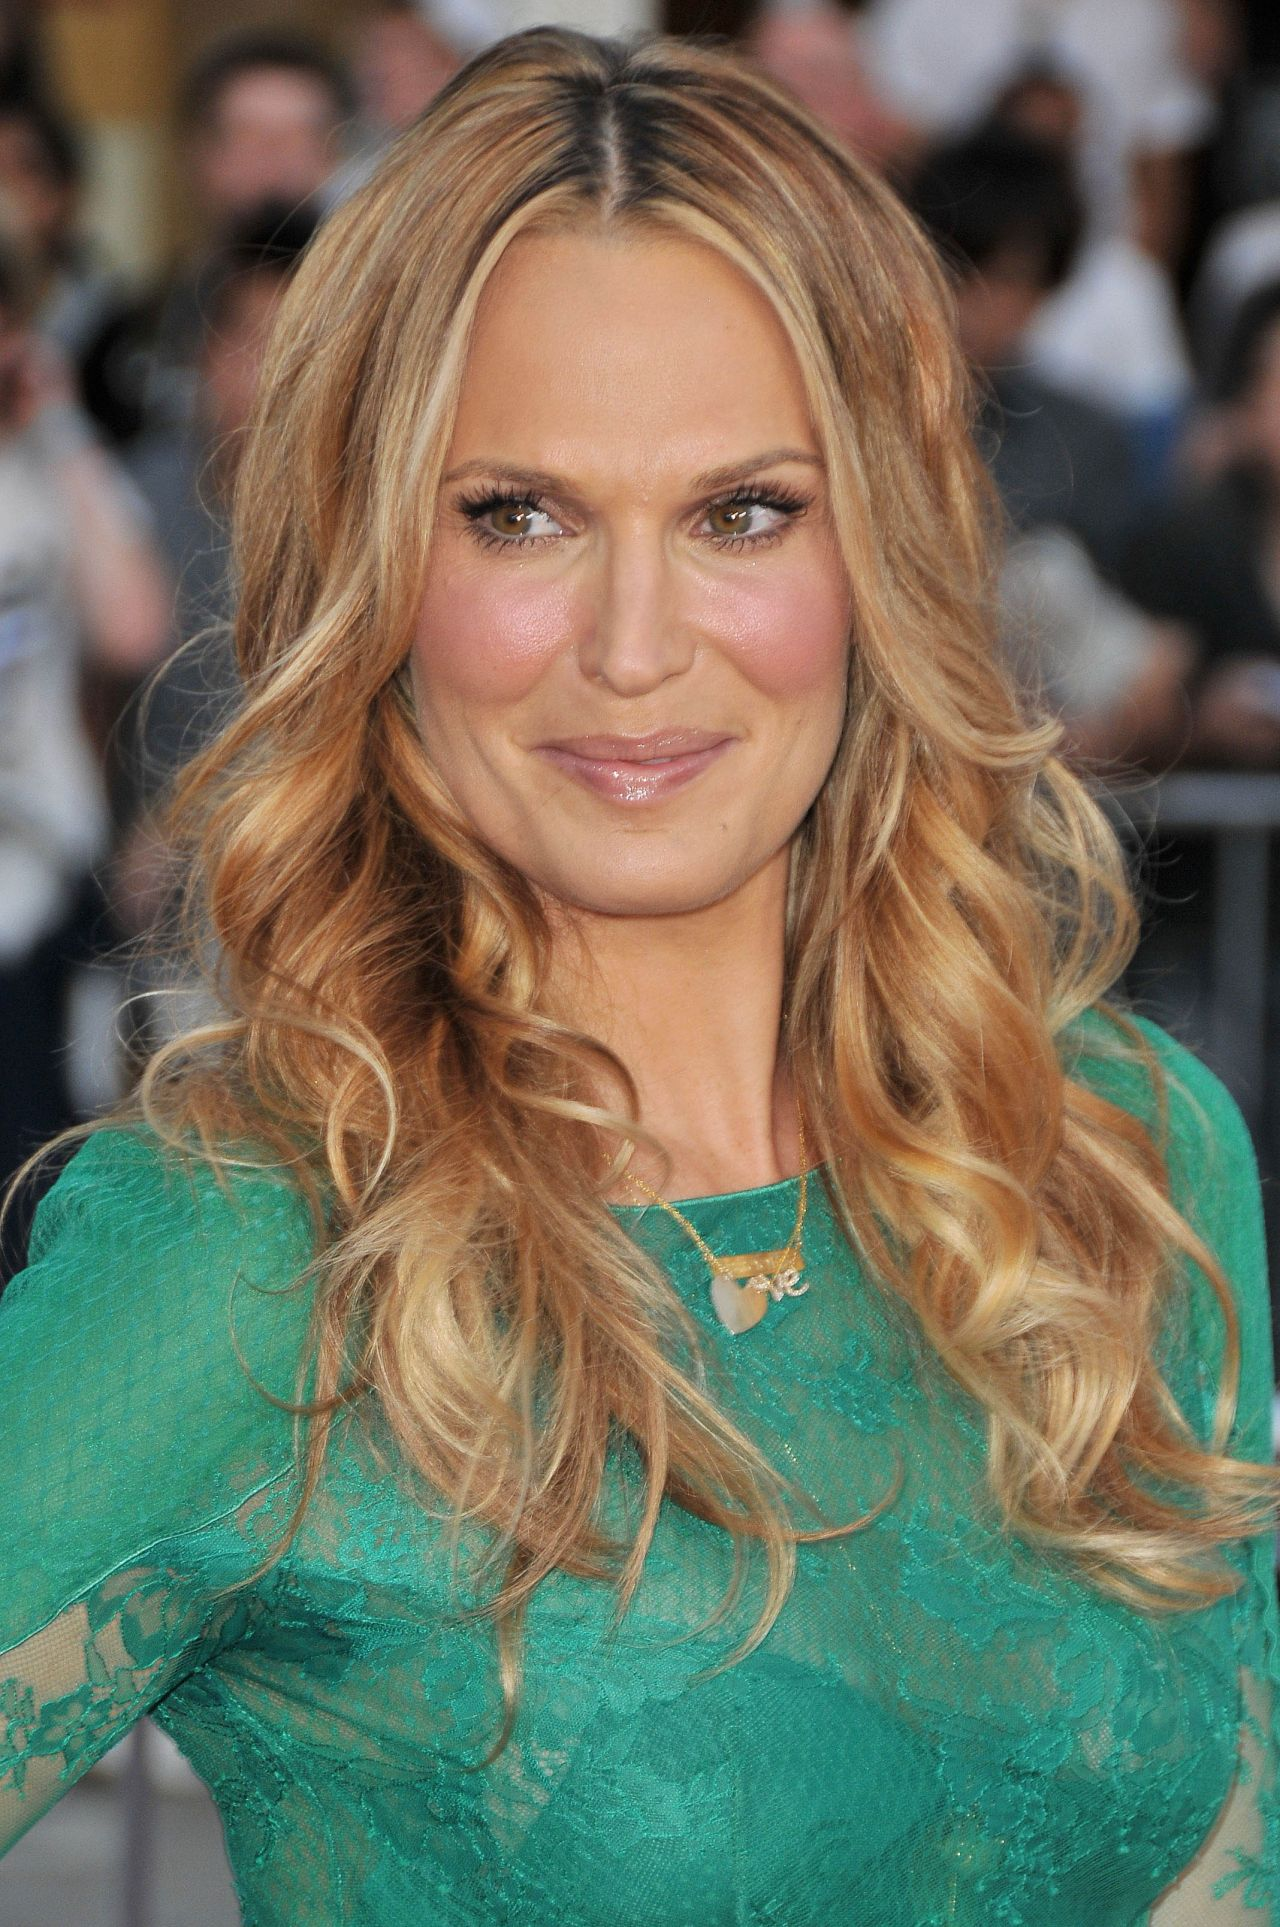 Molly Sims on Red Carpet - 'A Million Ways To Die In The ...